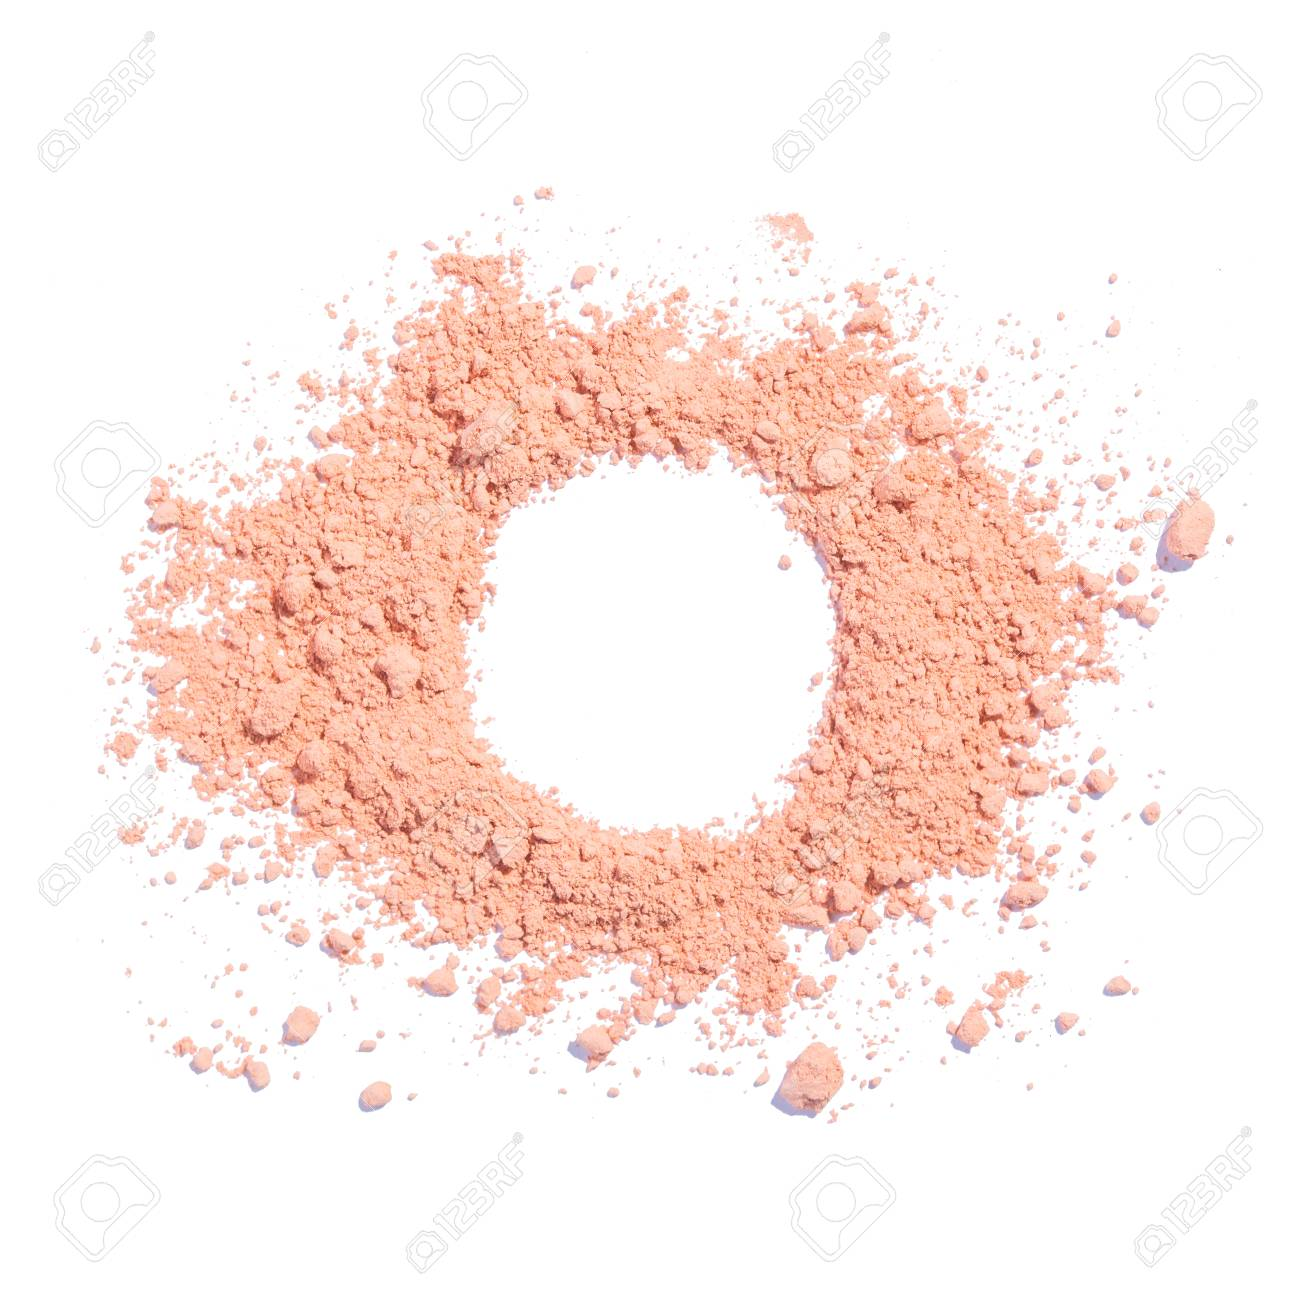 Cosmetic powder beige color crushed blush palette isolated on white - 104939799